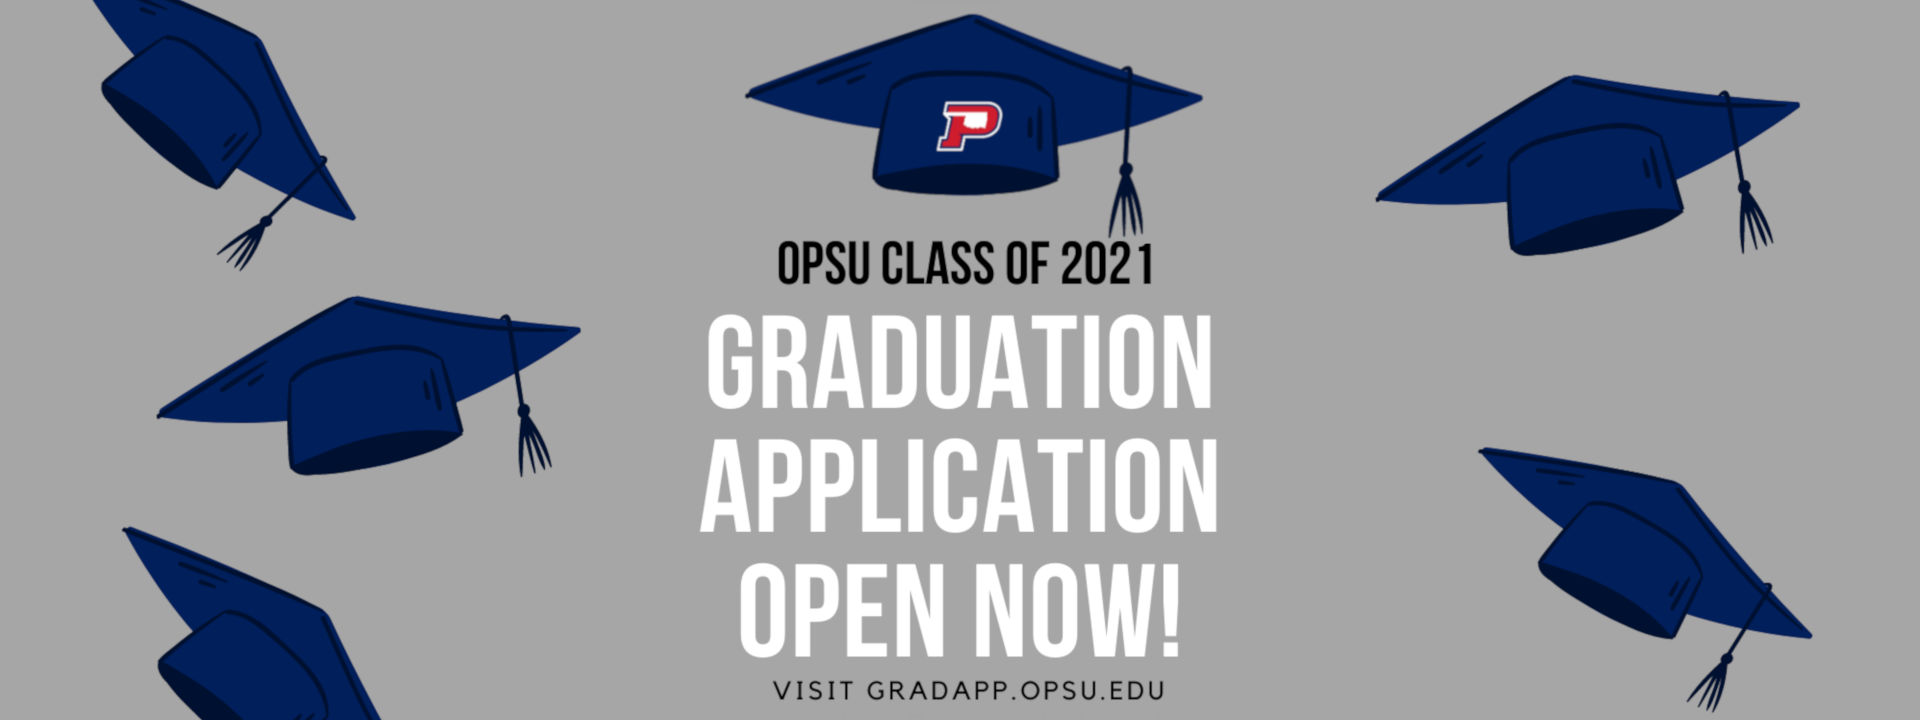 Spring and Summer 2021 Grads - Application Deadline - March 31, 2021